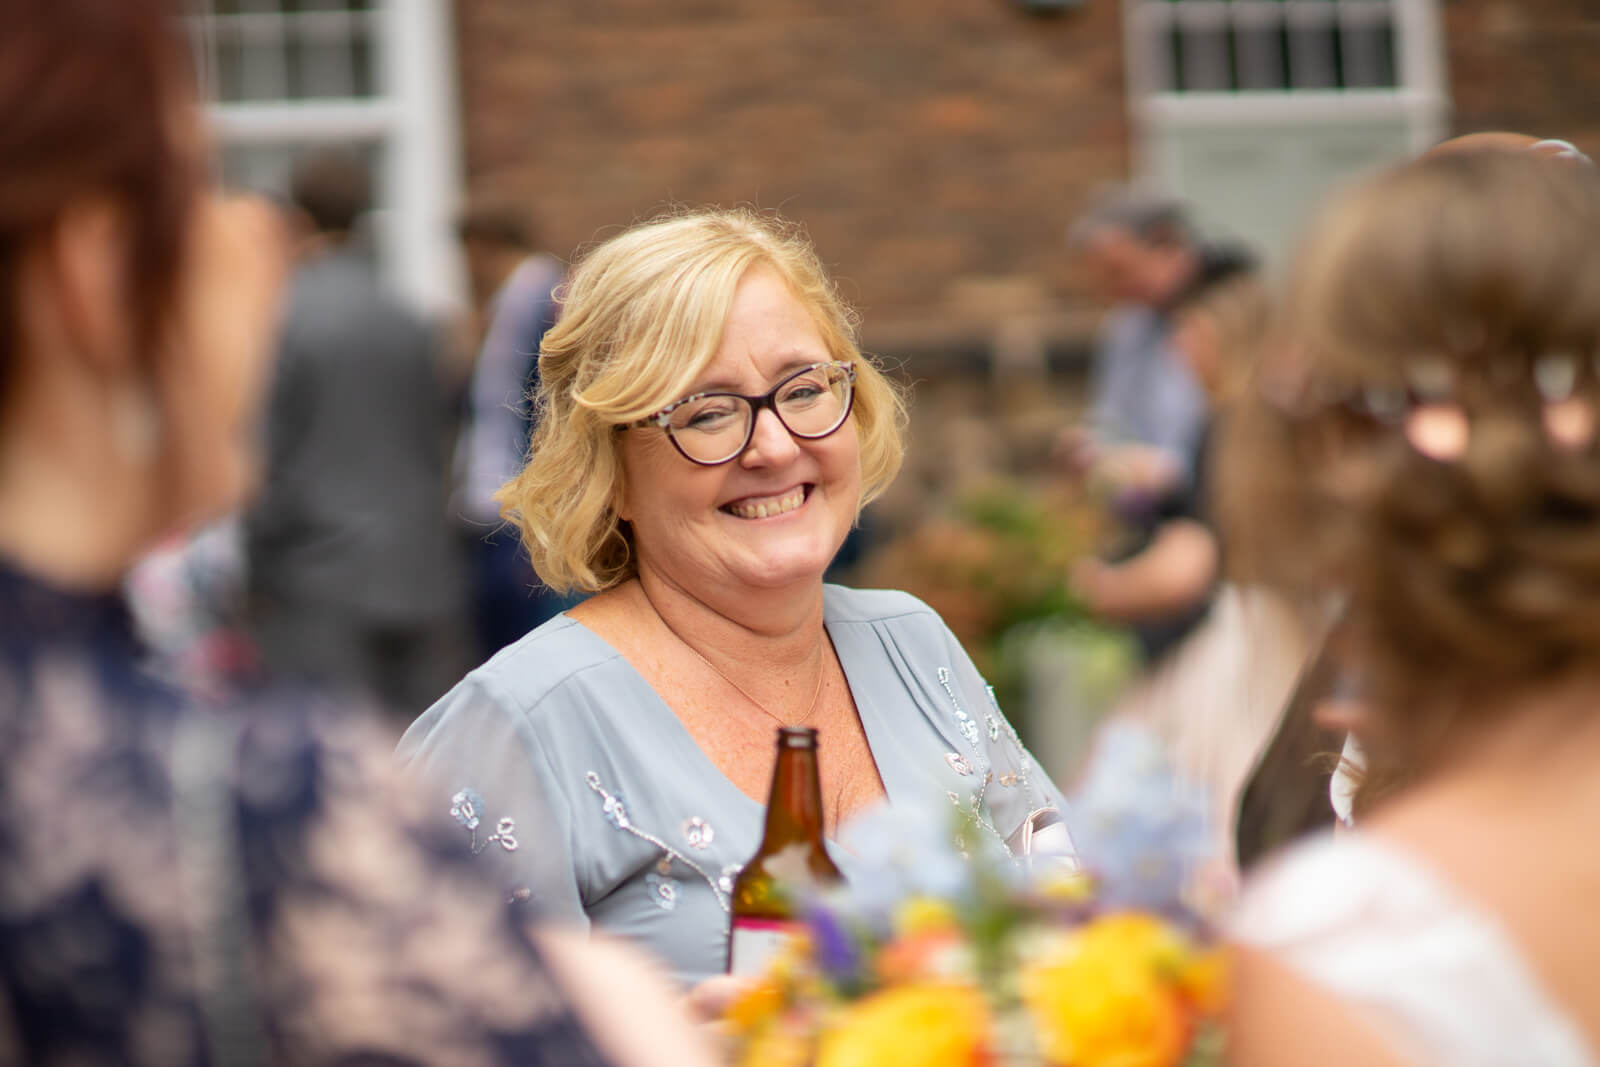 Mother of the bride laughs at the camera during the drinks reception